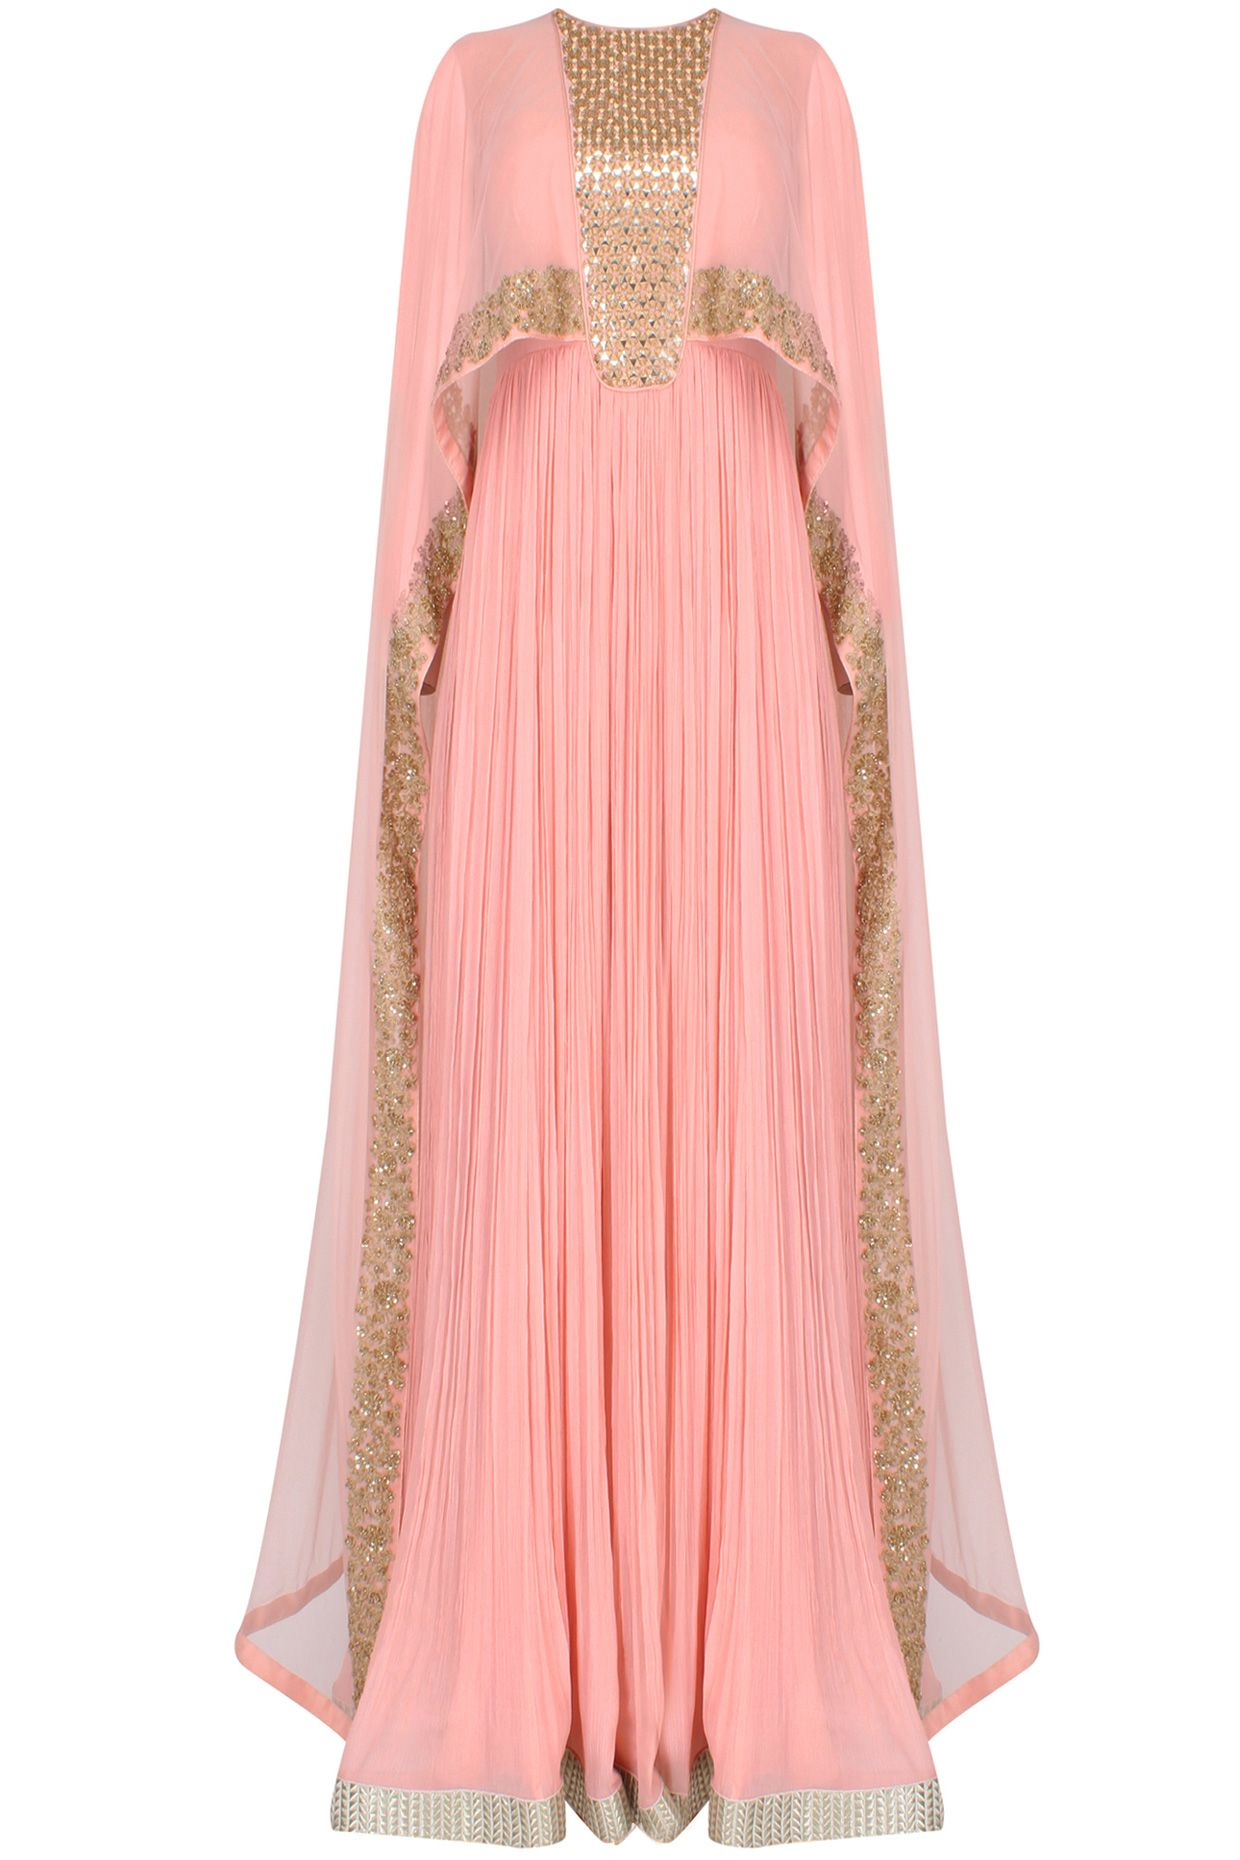 bd4eb3fbadd98 Pink pleated anarkali set with attached mirror work sheer cape available  only at Pernia's Pop Up Shop.